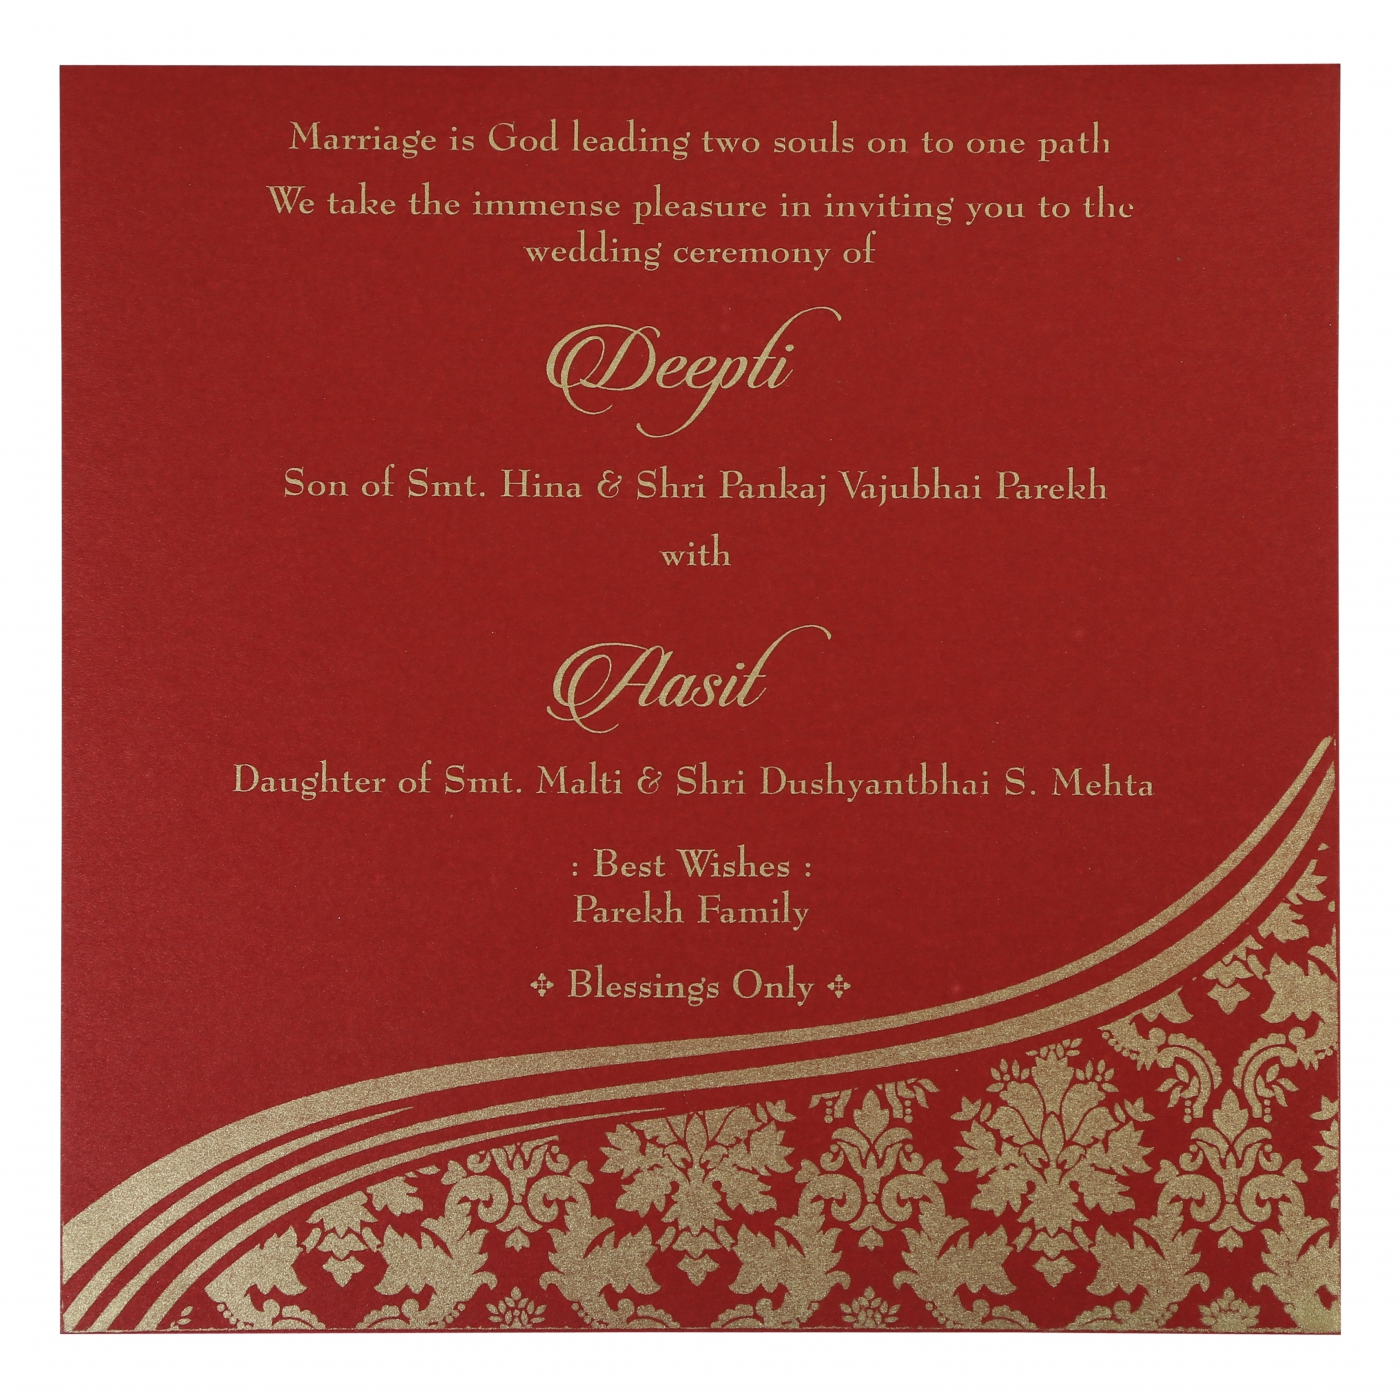 Foil Stamped Wedding Invitations: YELLOW GOLD SHIMMERY FOIL STAMPED WEDDING INVITATION : D